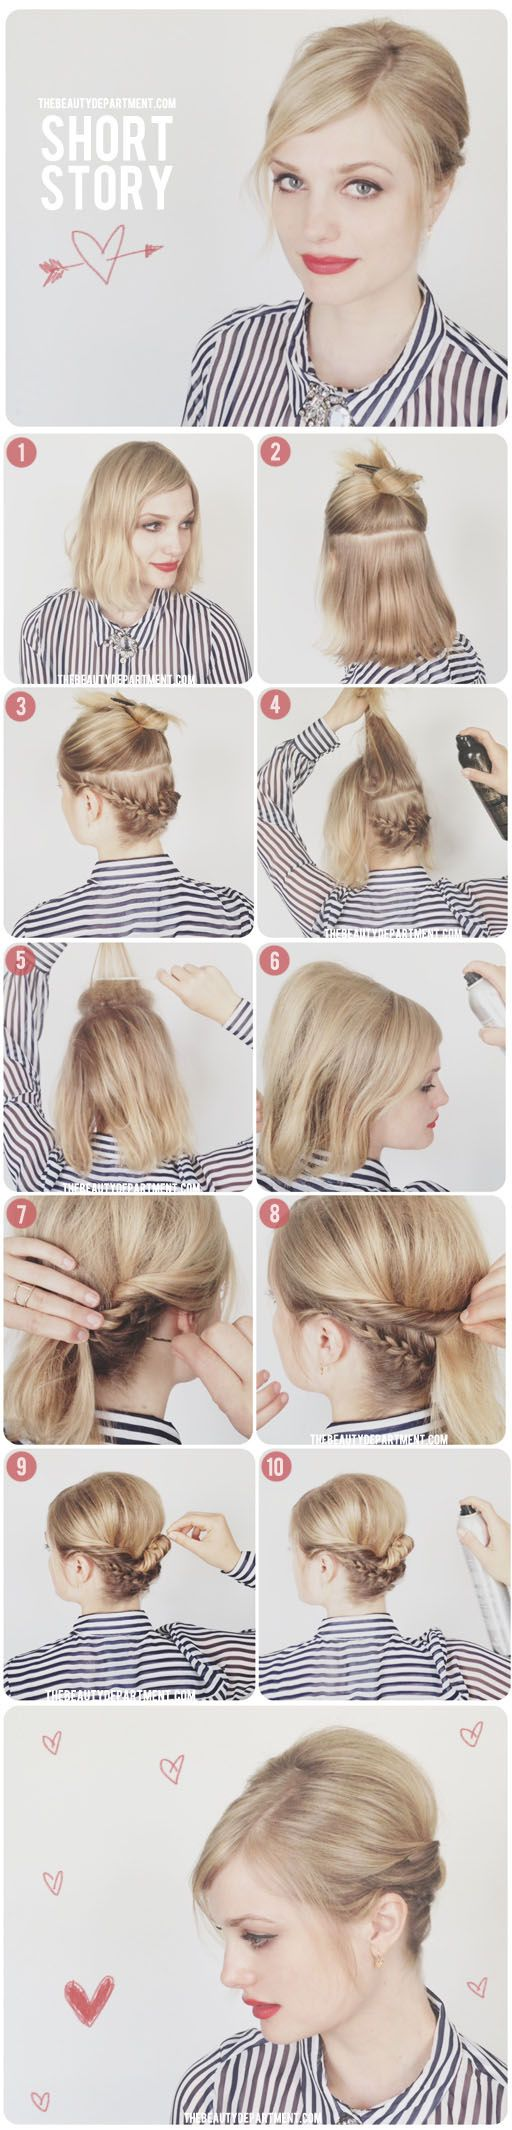 Girls with mediumlength bobs can do cute braided updos too